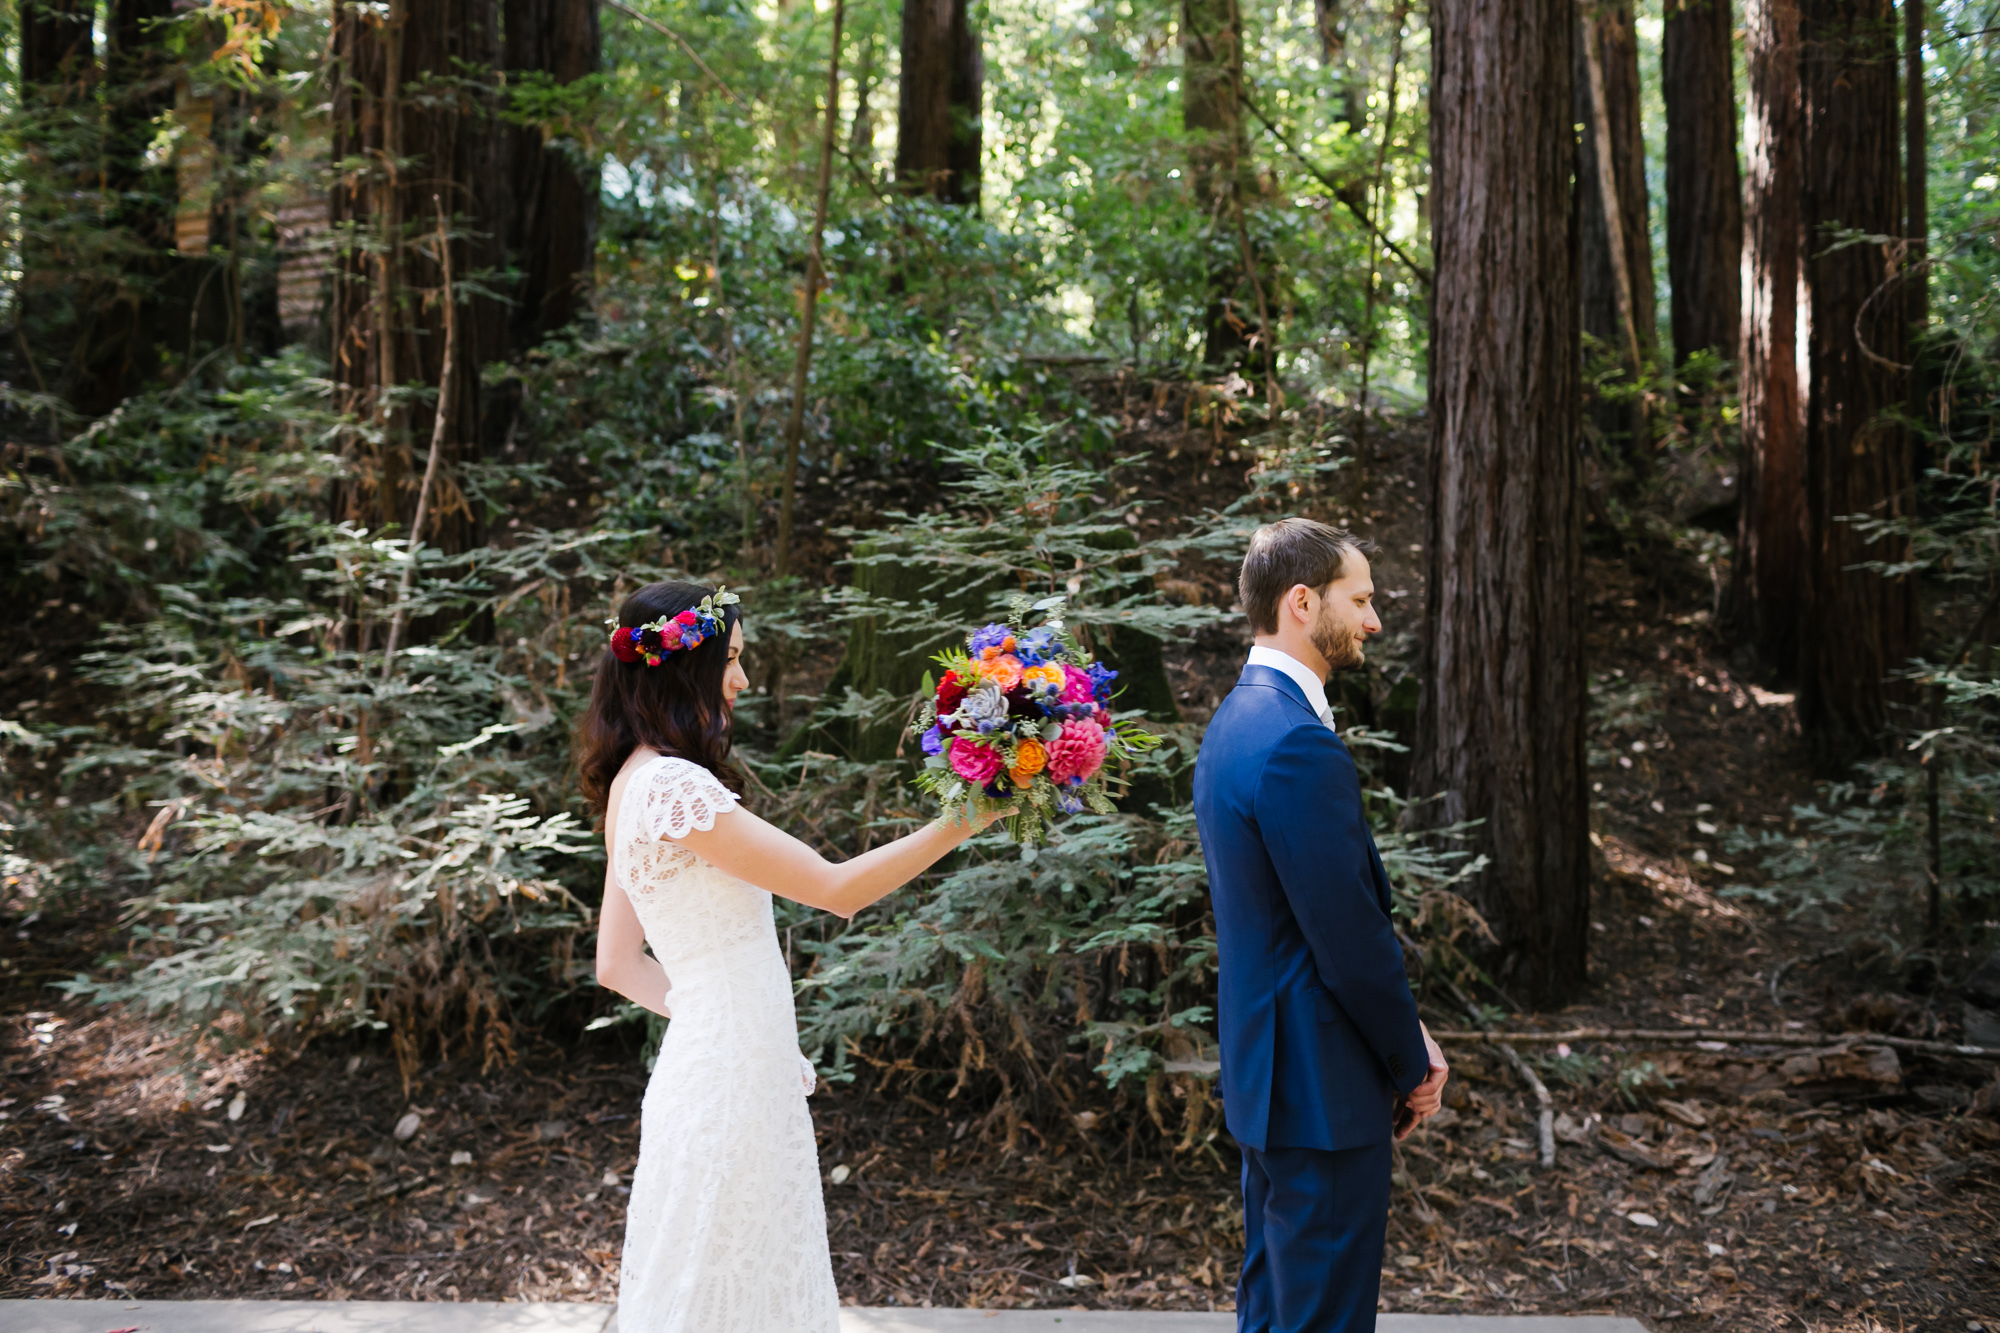 Bride holding colorful bouquet is about to tap her soon to be husband on the shoulder for their first look